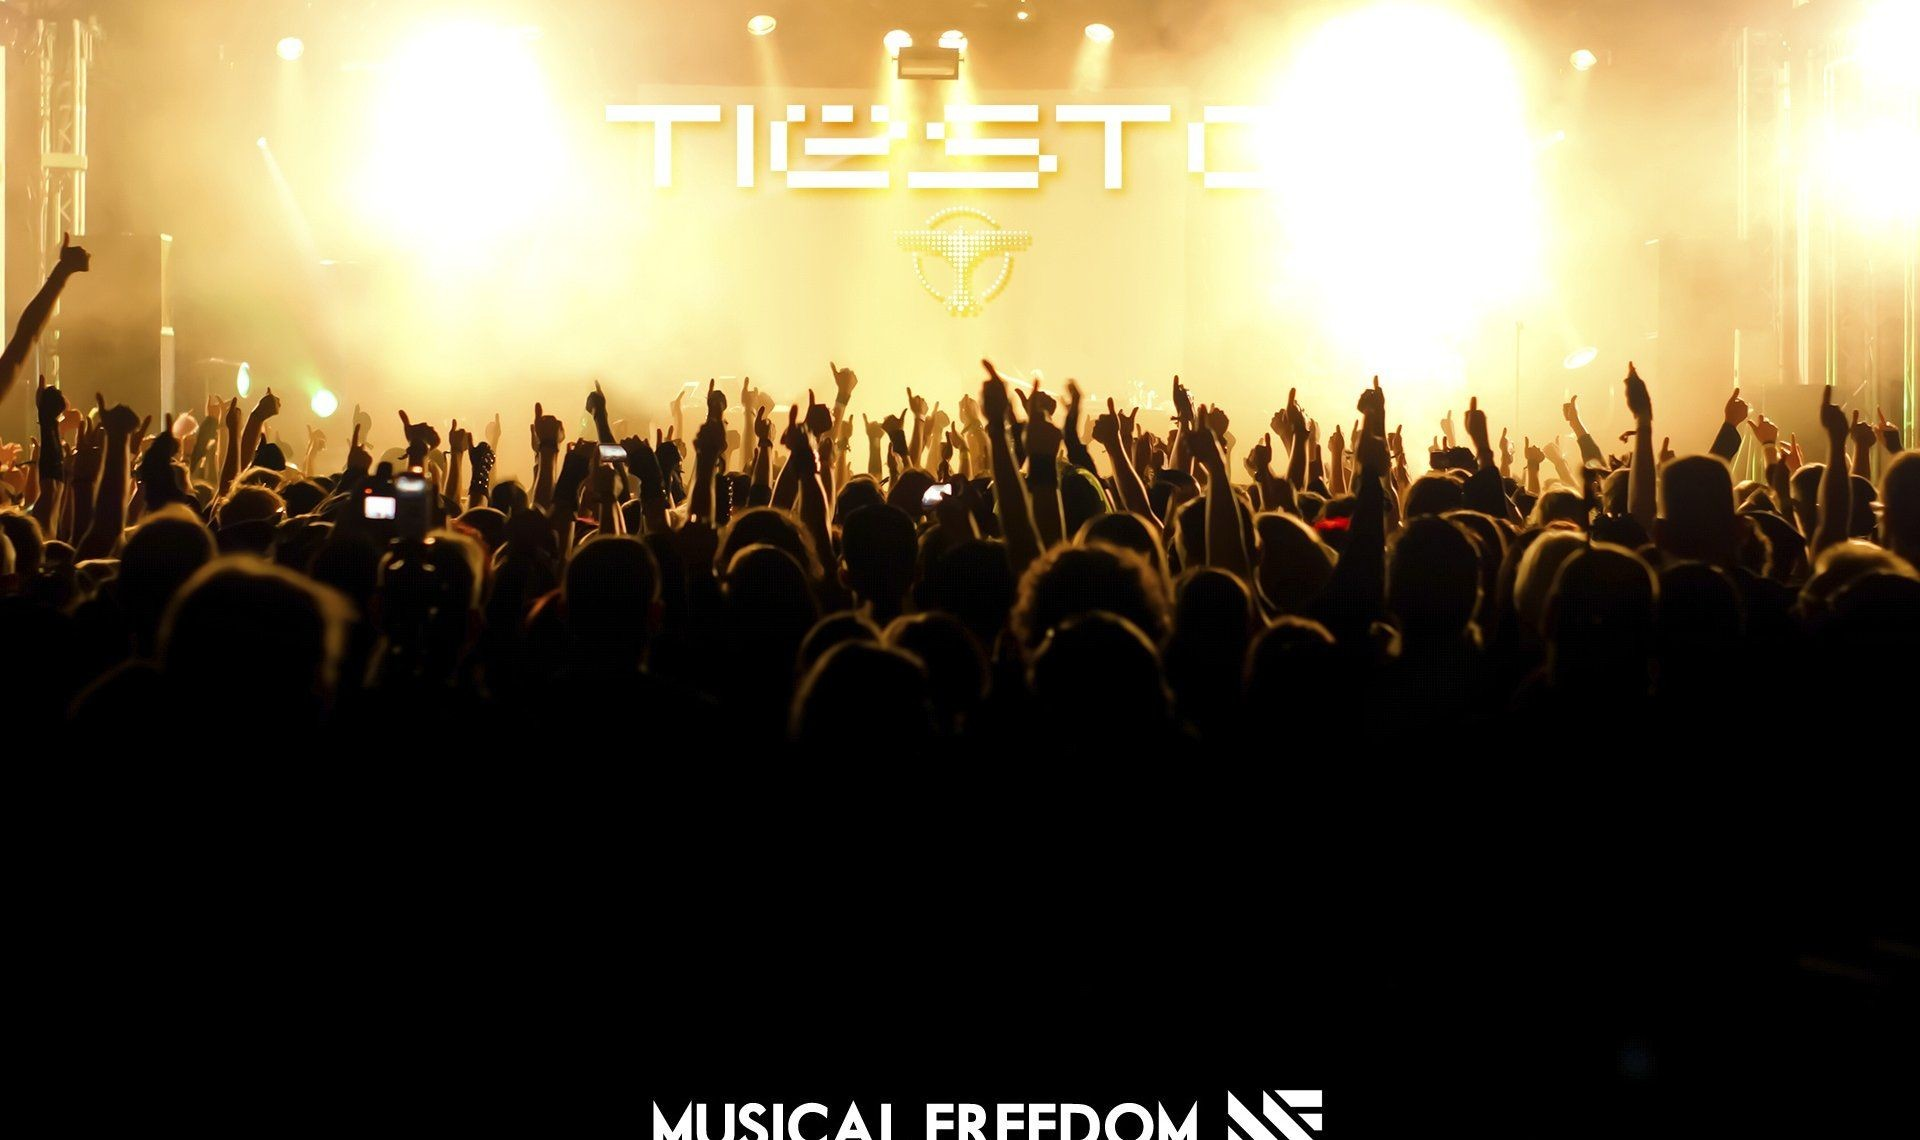 Res: 1920x1140, Tiesto Wallpapers Images Photos Pictures Backgrounds